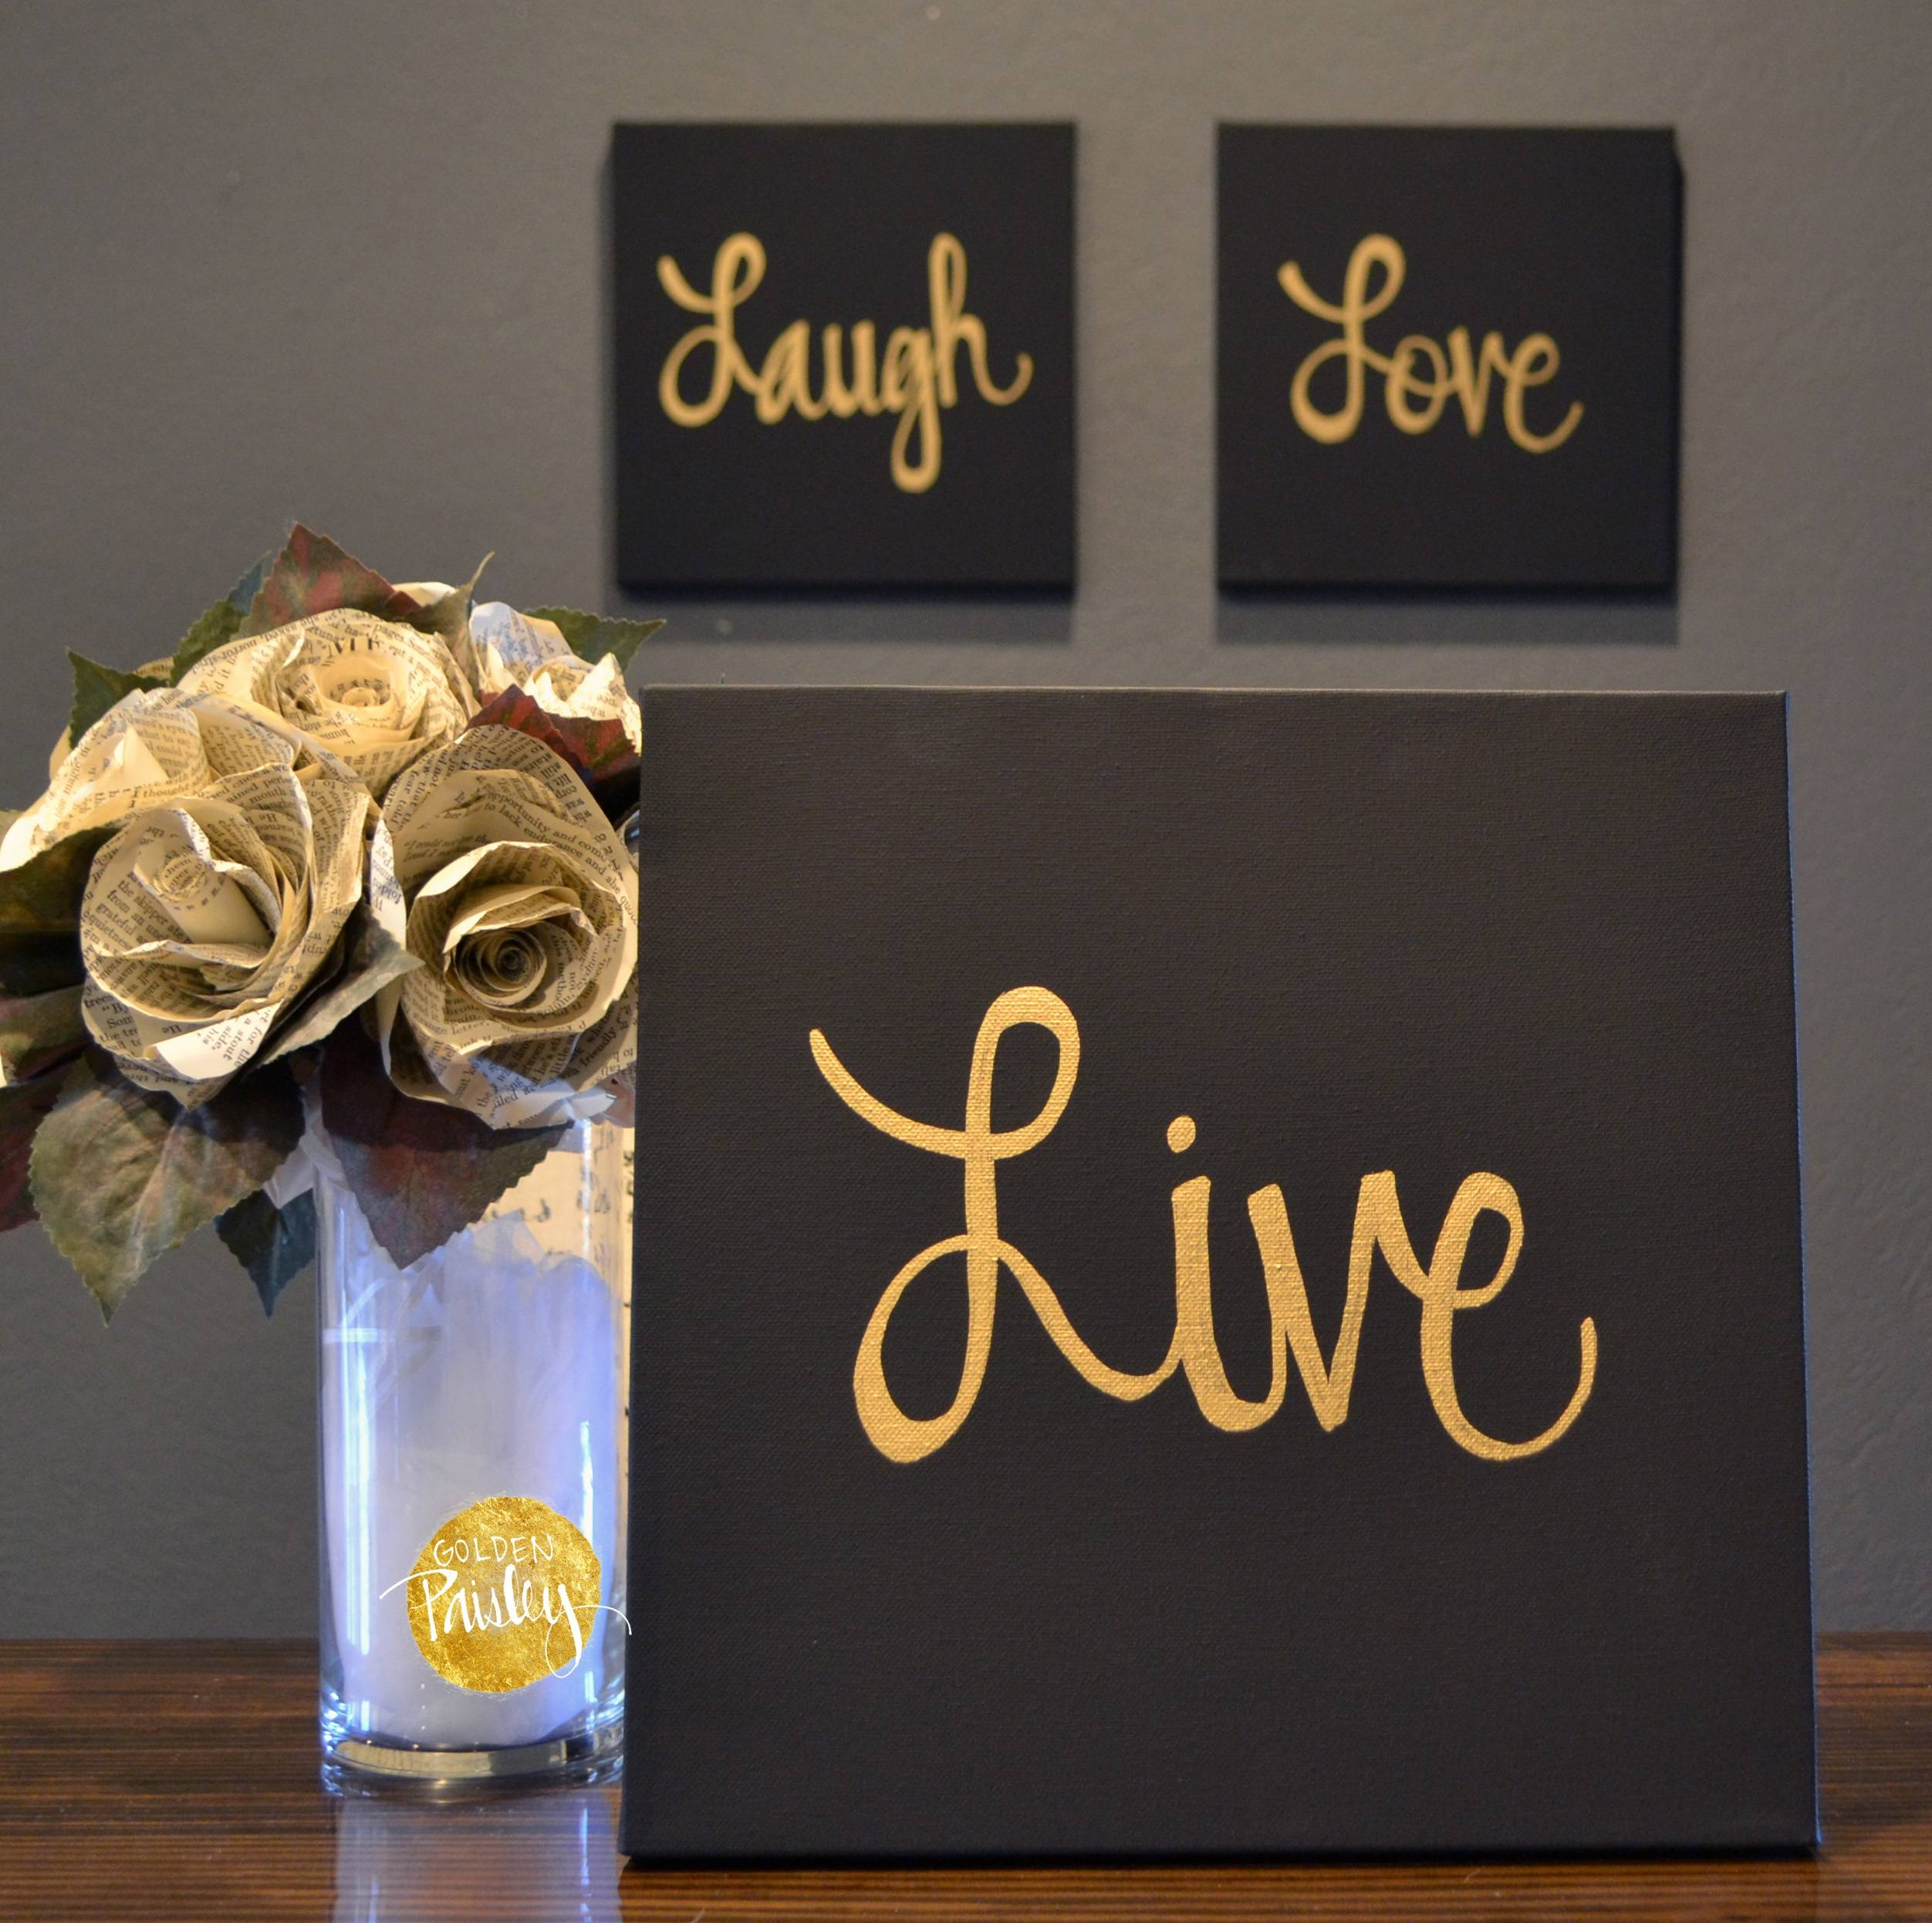 Live Laugh Love Black & Gold 3 Piece Wall Decor Set Intended For Most Recent 3 Piece Wall Art (View 19 of 30)